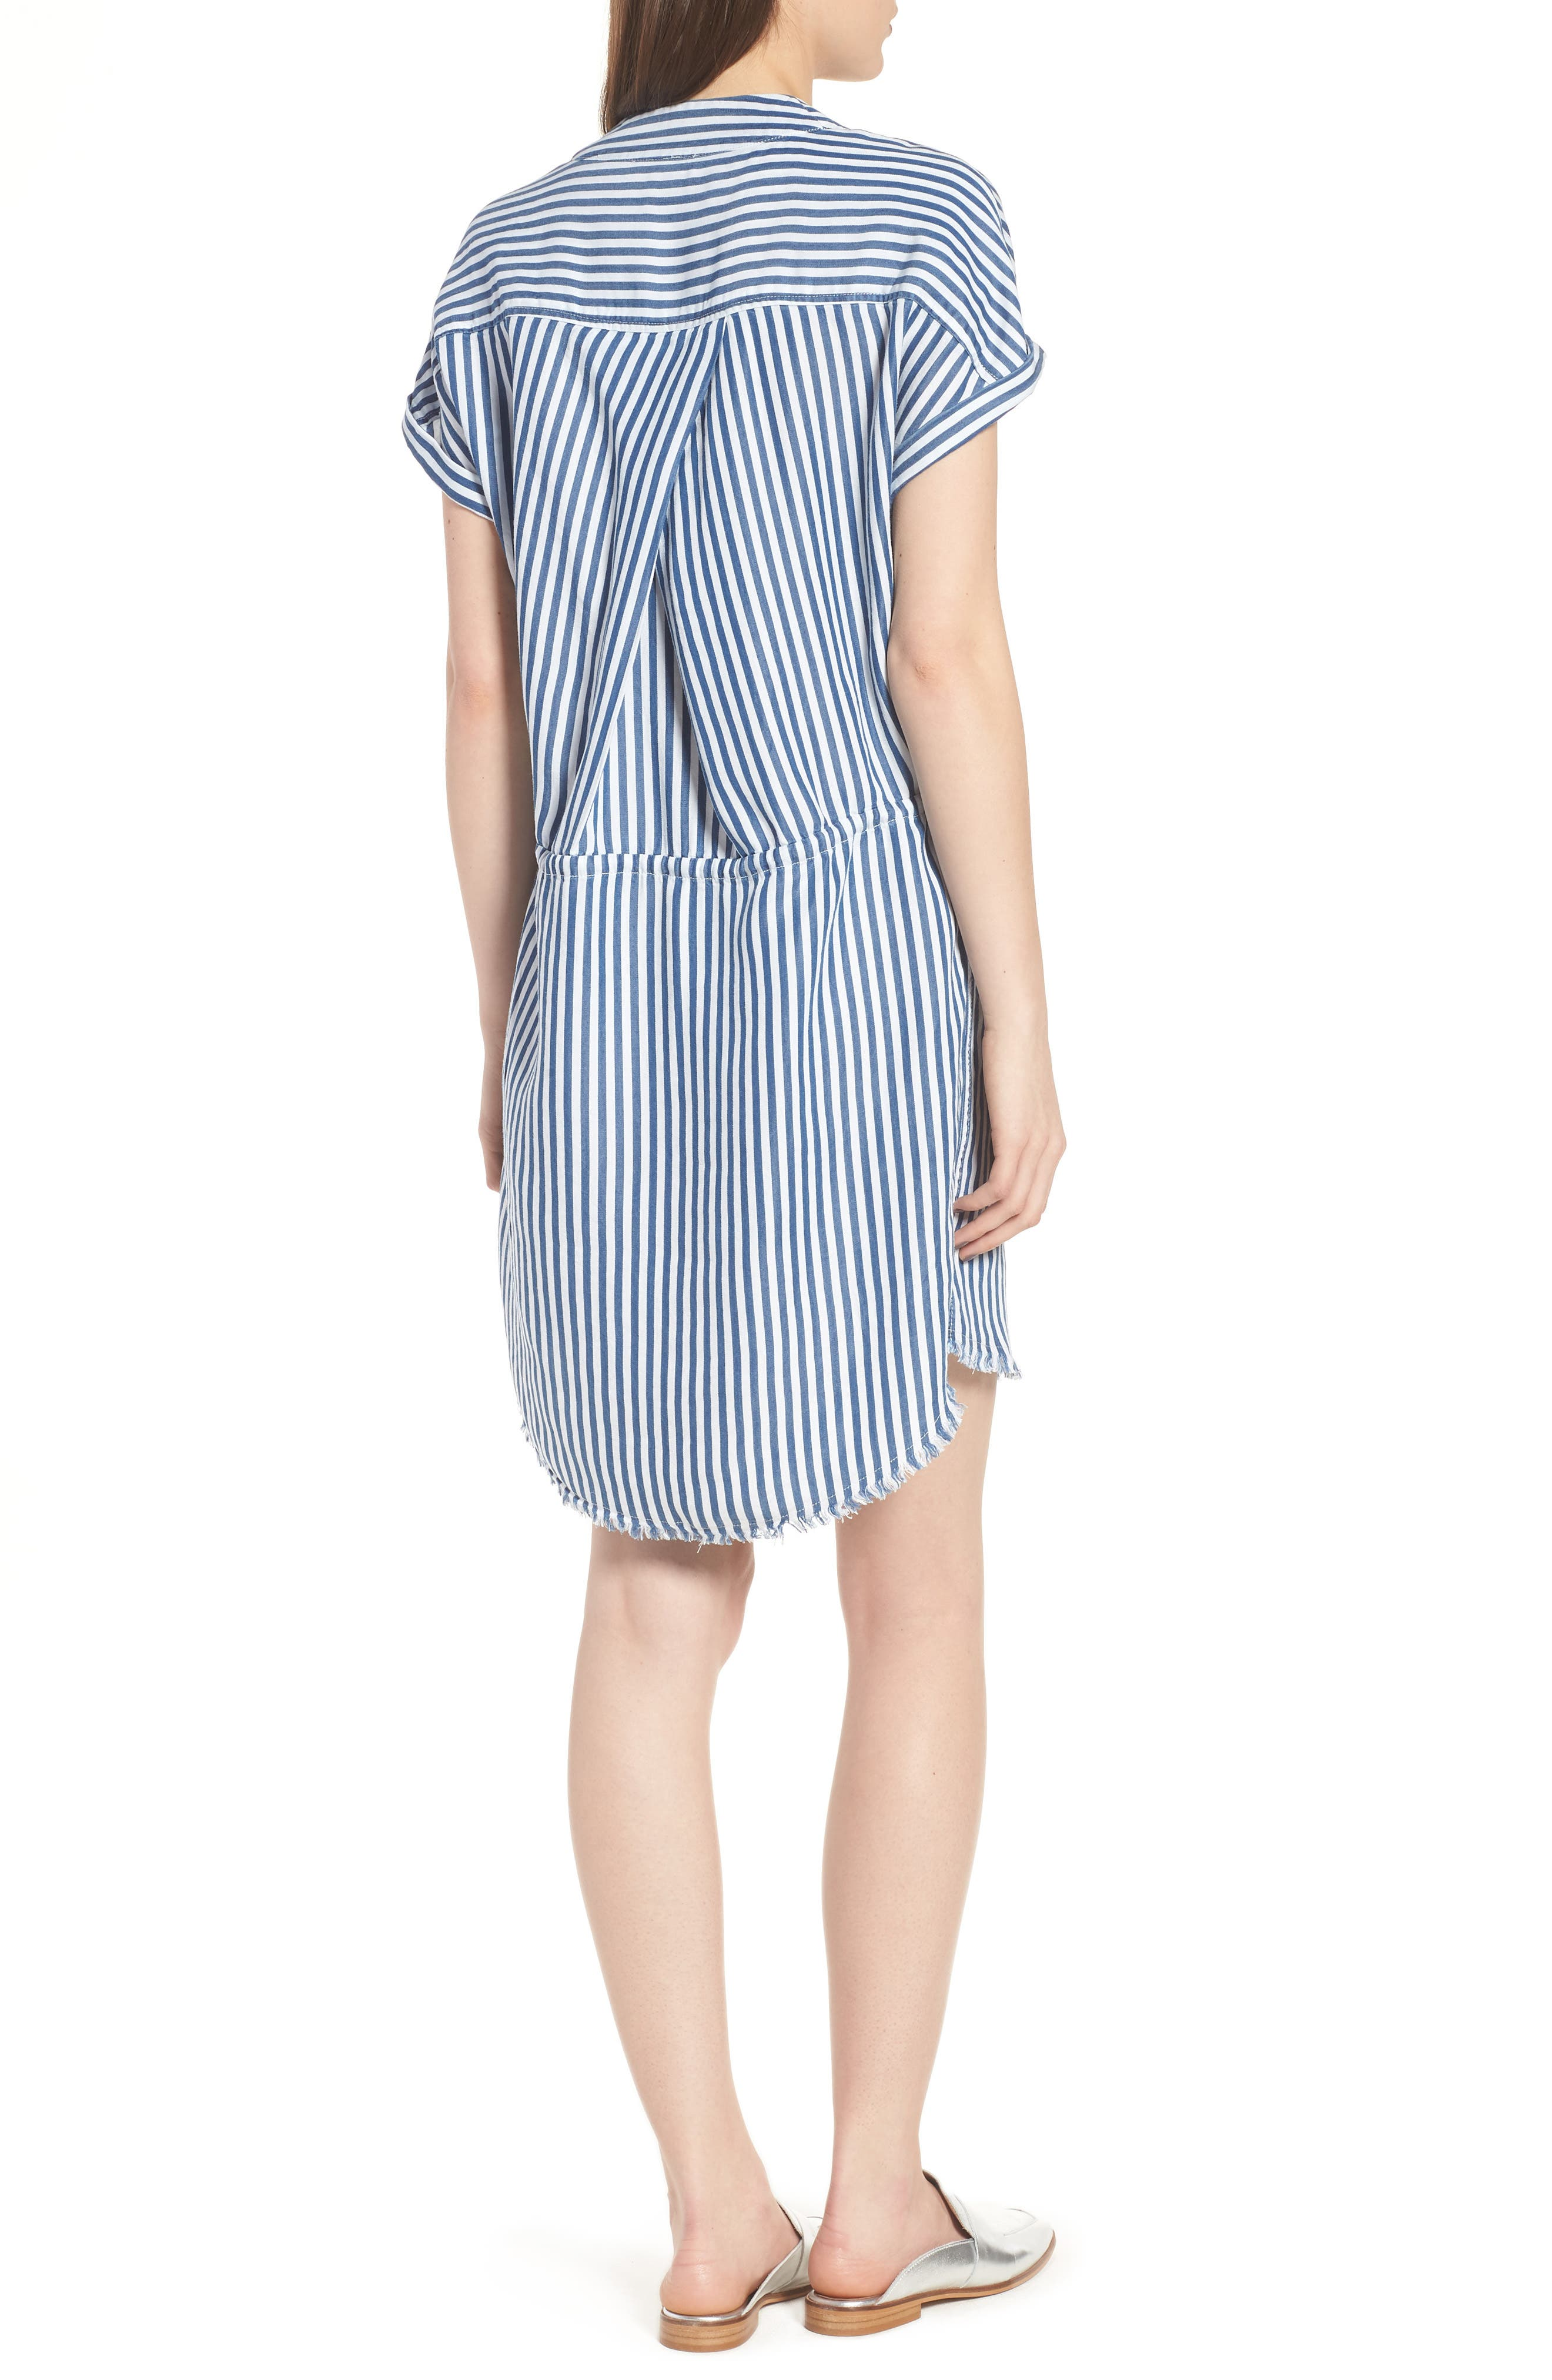 Haidee Stripe Shift Dress,                             Alternate thumbnail 2, color,                             White/ Blue Bell Stripe